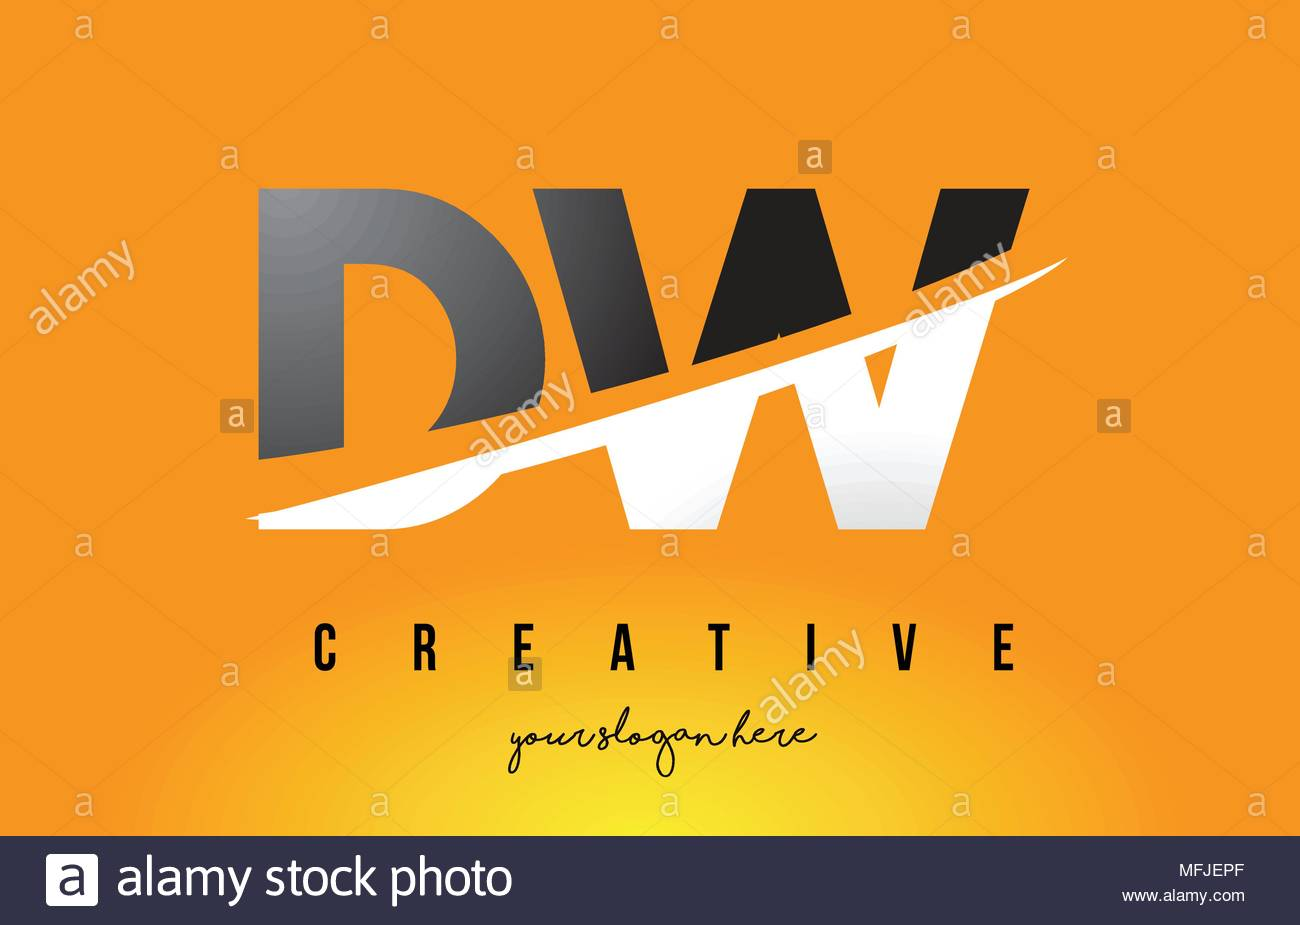 DW D W Letter Modern Logo Design with Swoosh Cutting the Middle 1300x925